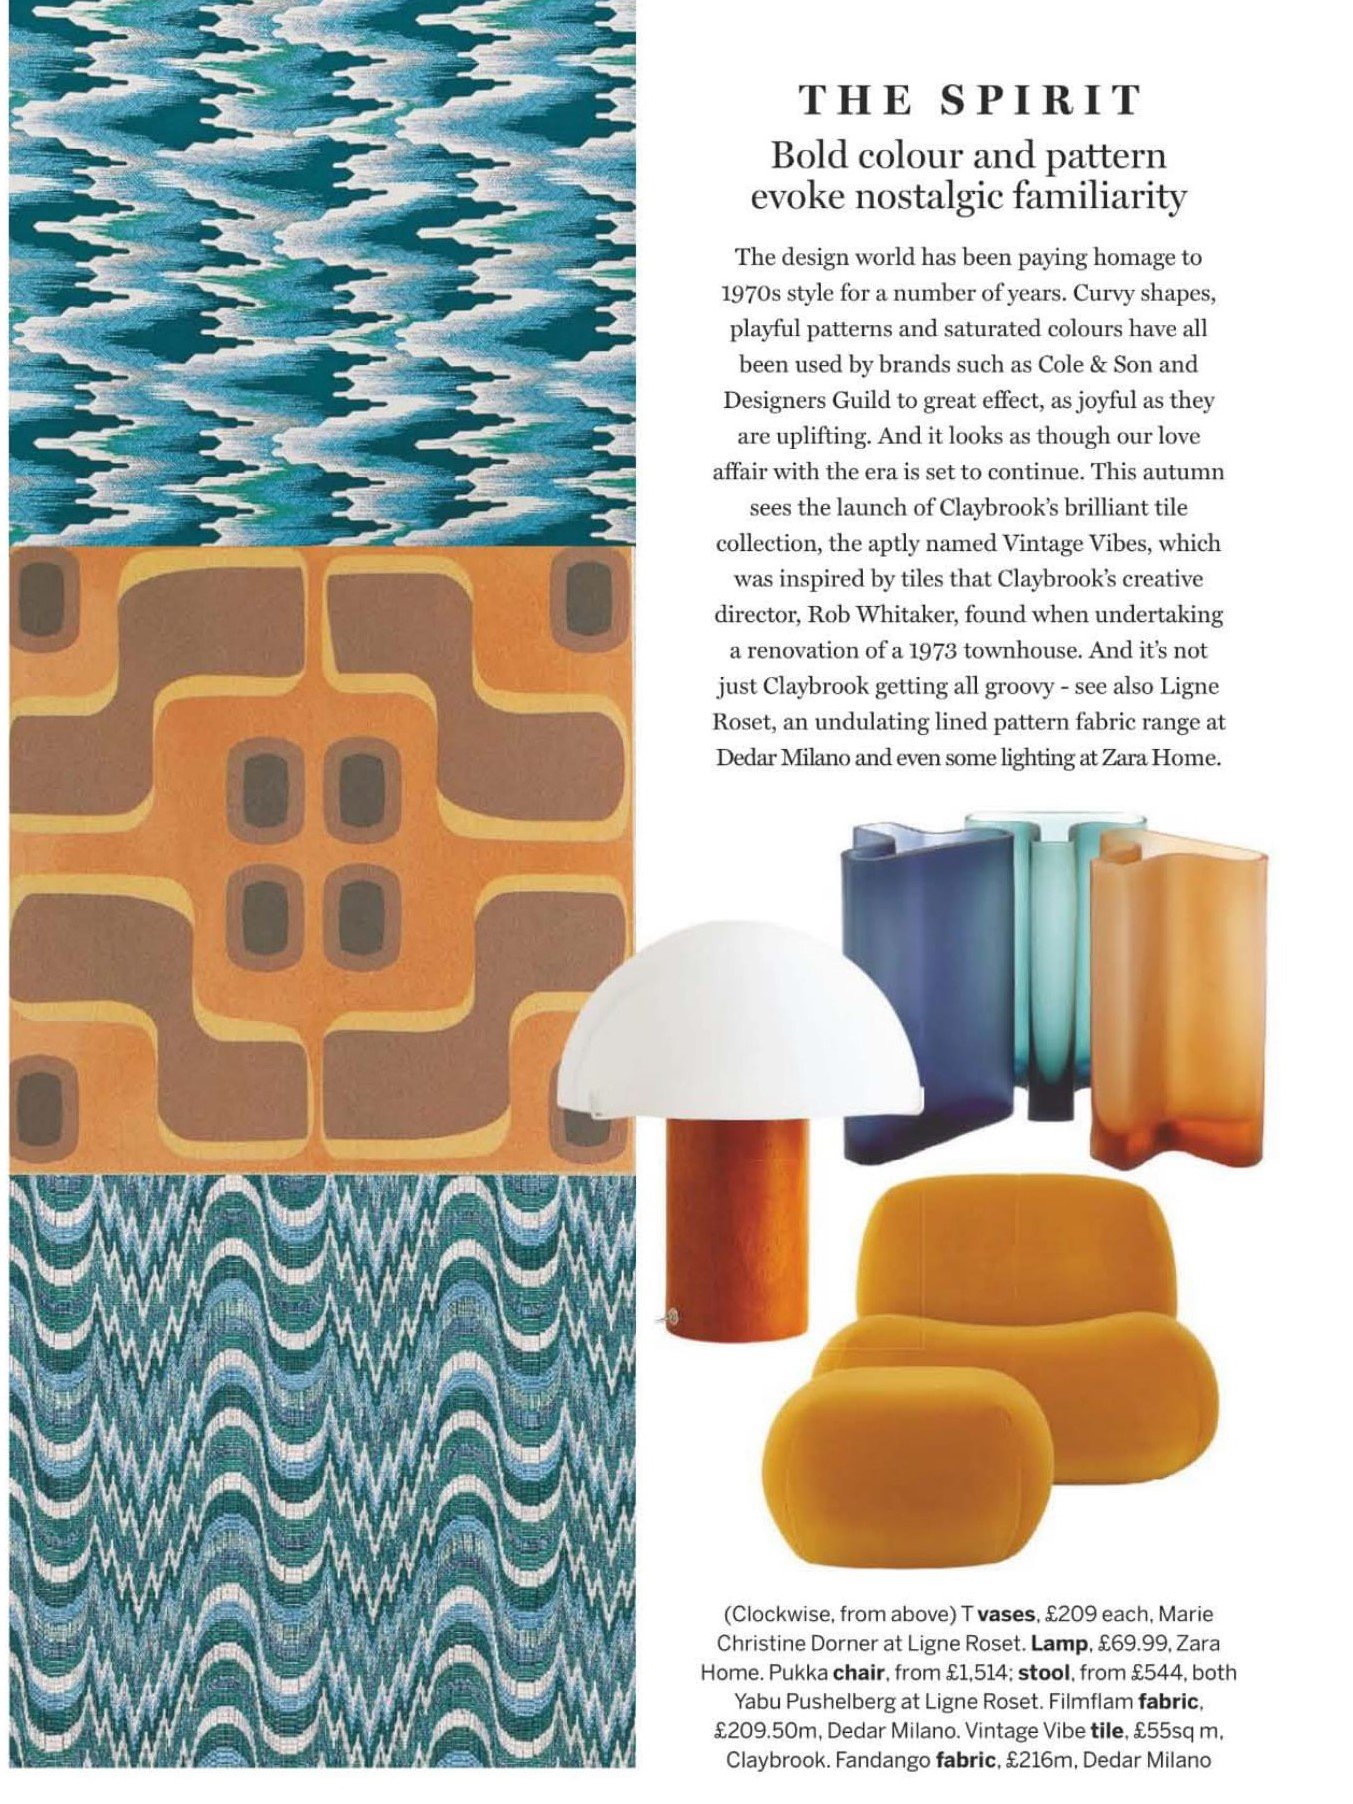 Ligne Roset's Pukka chair, stool and T vases's evoke nostalgic familiarity with their bold colour, says Homes & Gardens